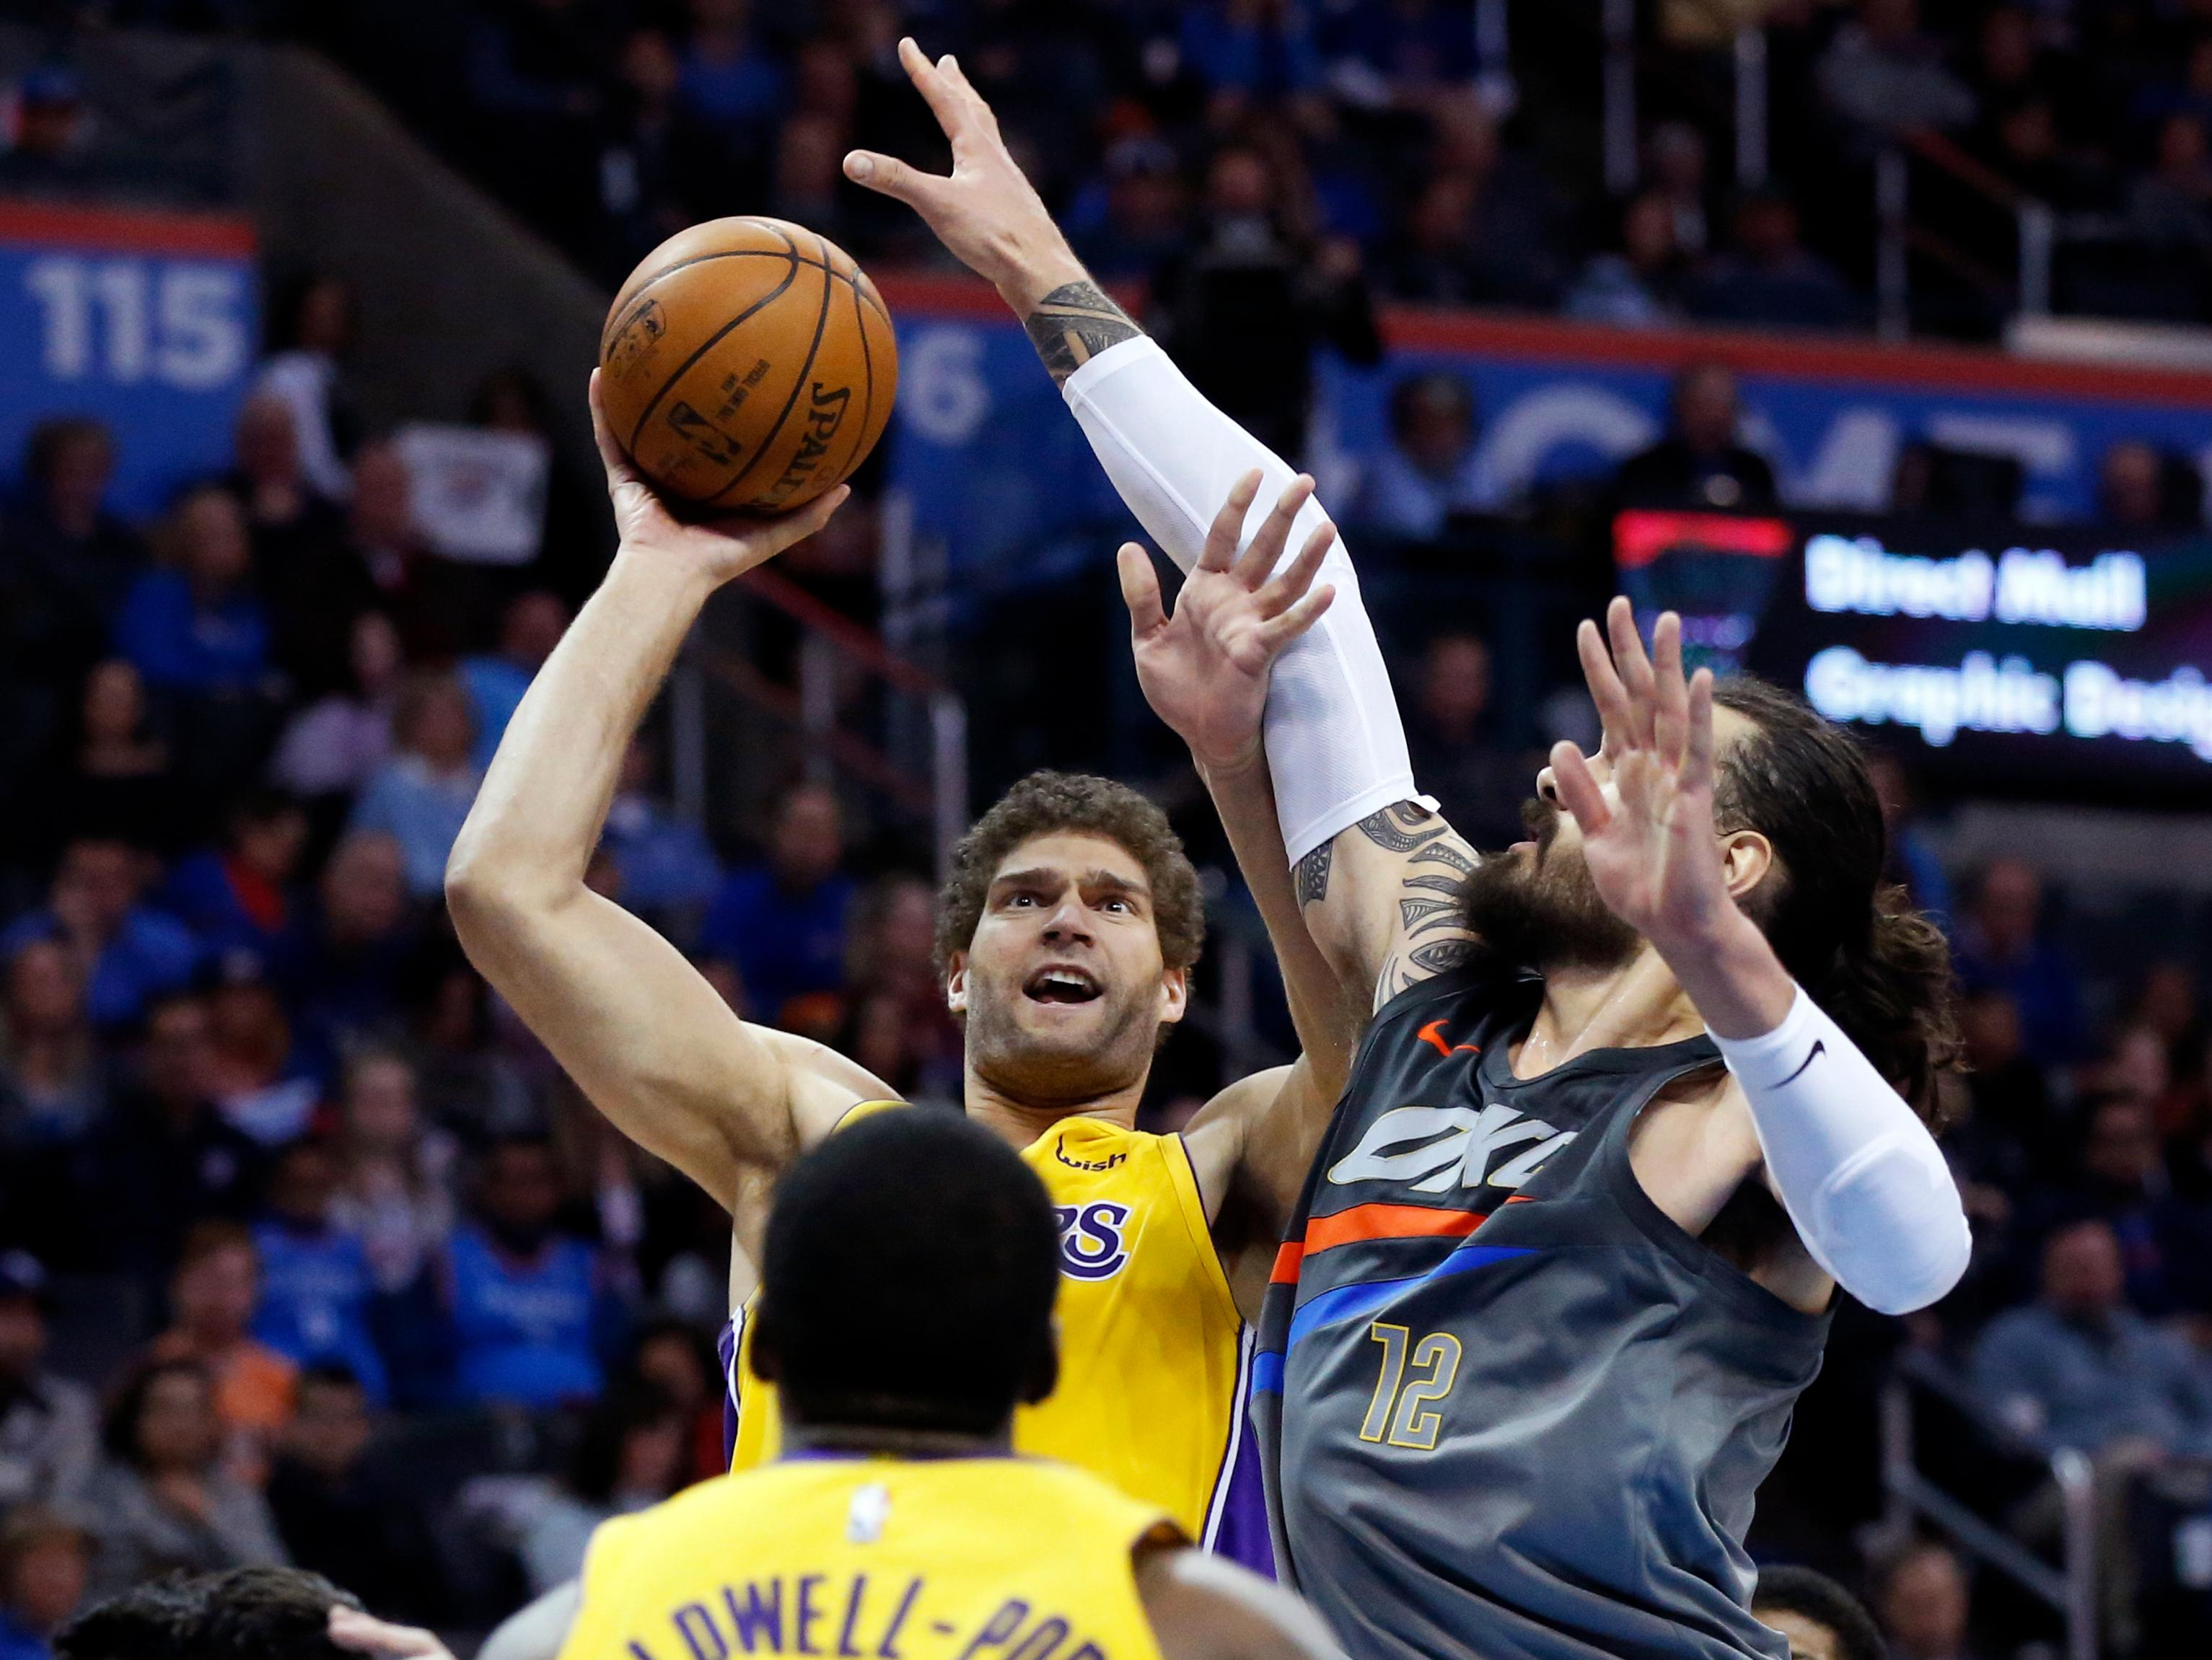 Los Angeles Lakers center Brook Lopez, top left, shoots in front of Oklahoma City Thunder center Steven Adams (12) in the first half of an NBA basketball game in Oklahoma City, Sunday, Feb. 4, 2018. (AP Photo/Sue Ogrocki)